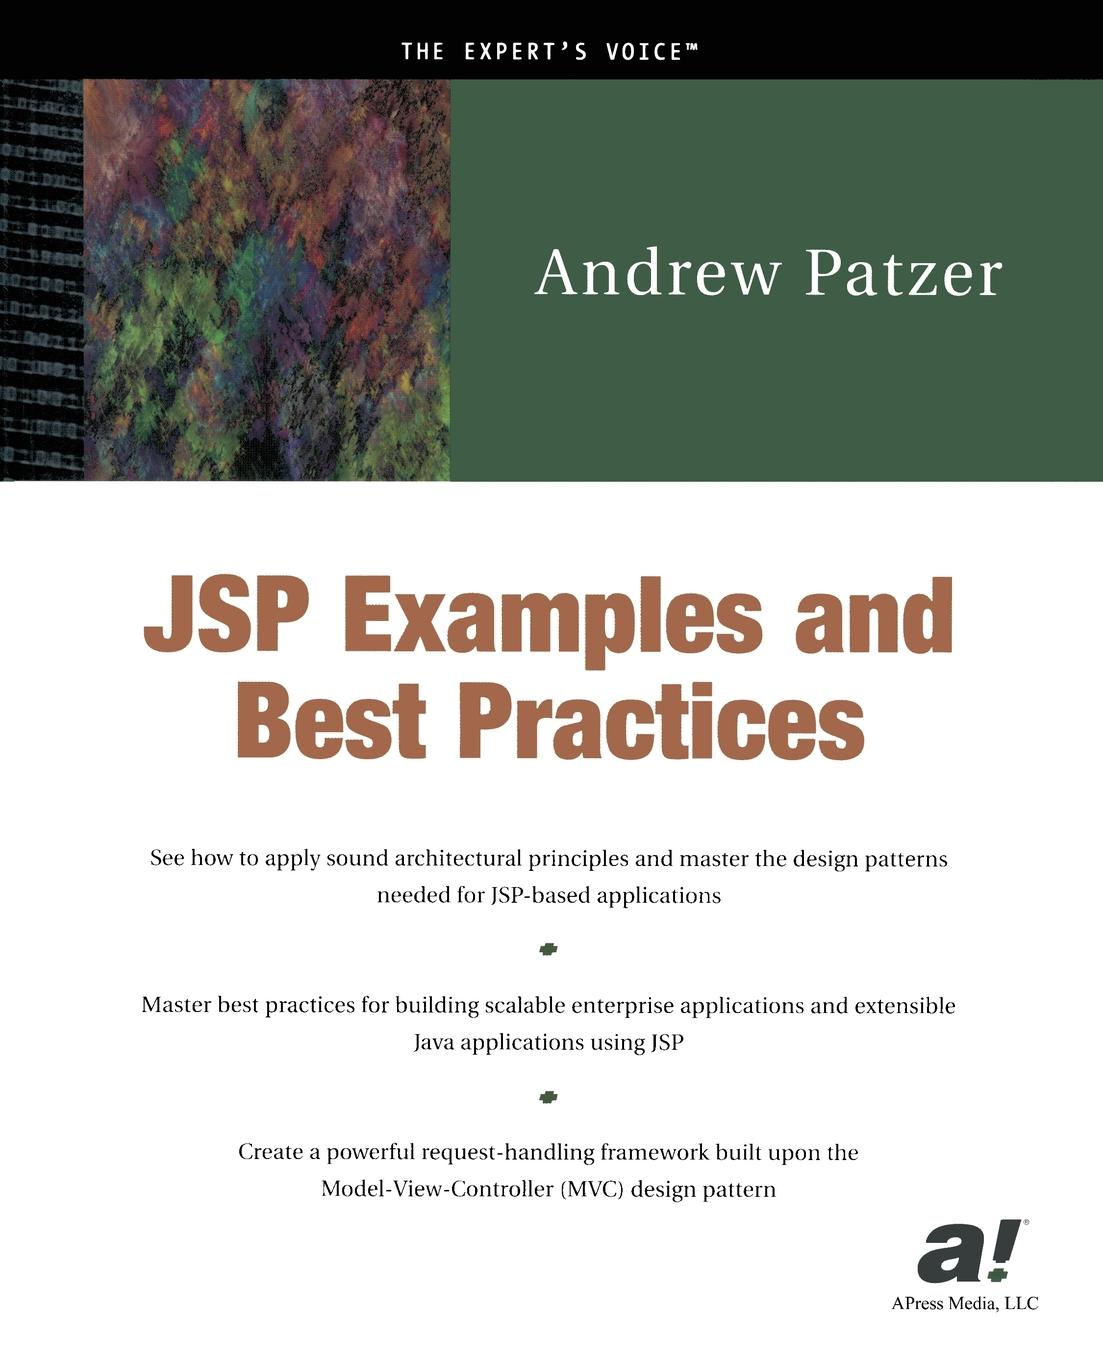 Andrew Patzer JSP Examples and Best Practices elena serrano torregrosa chemistry education best practices opportunities and trends